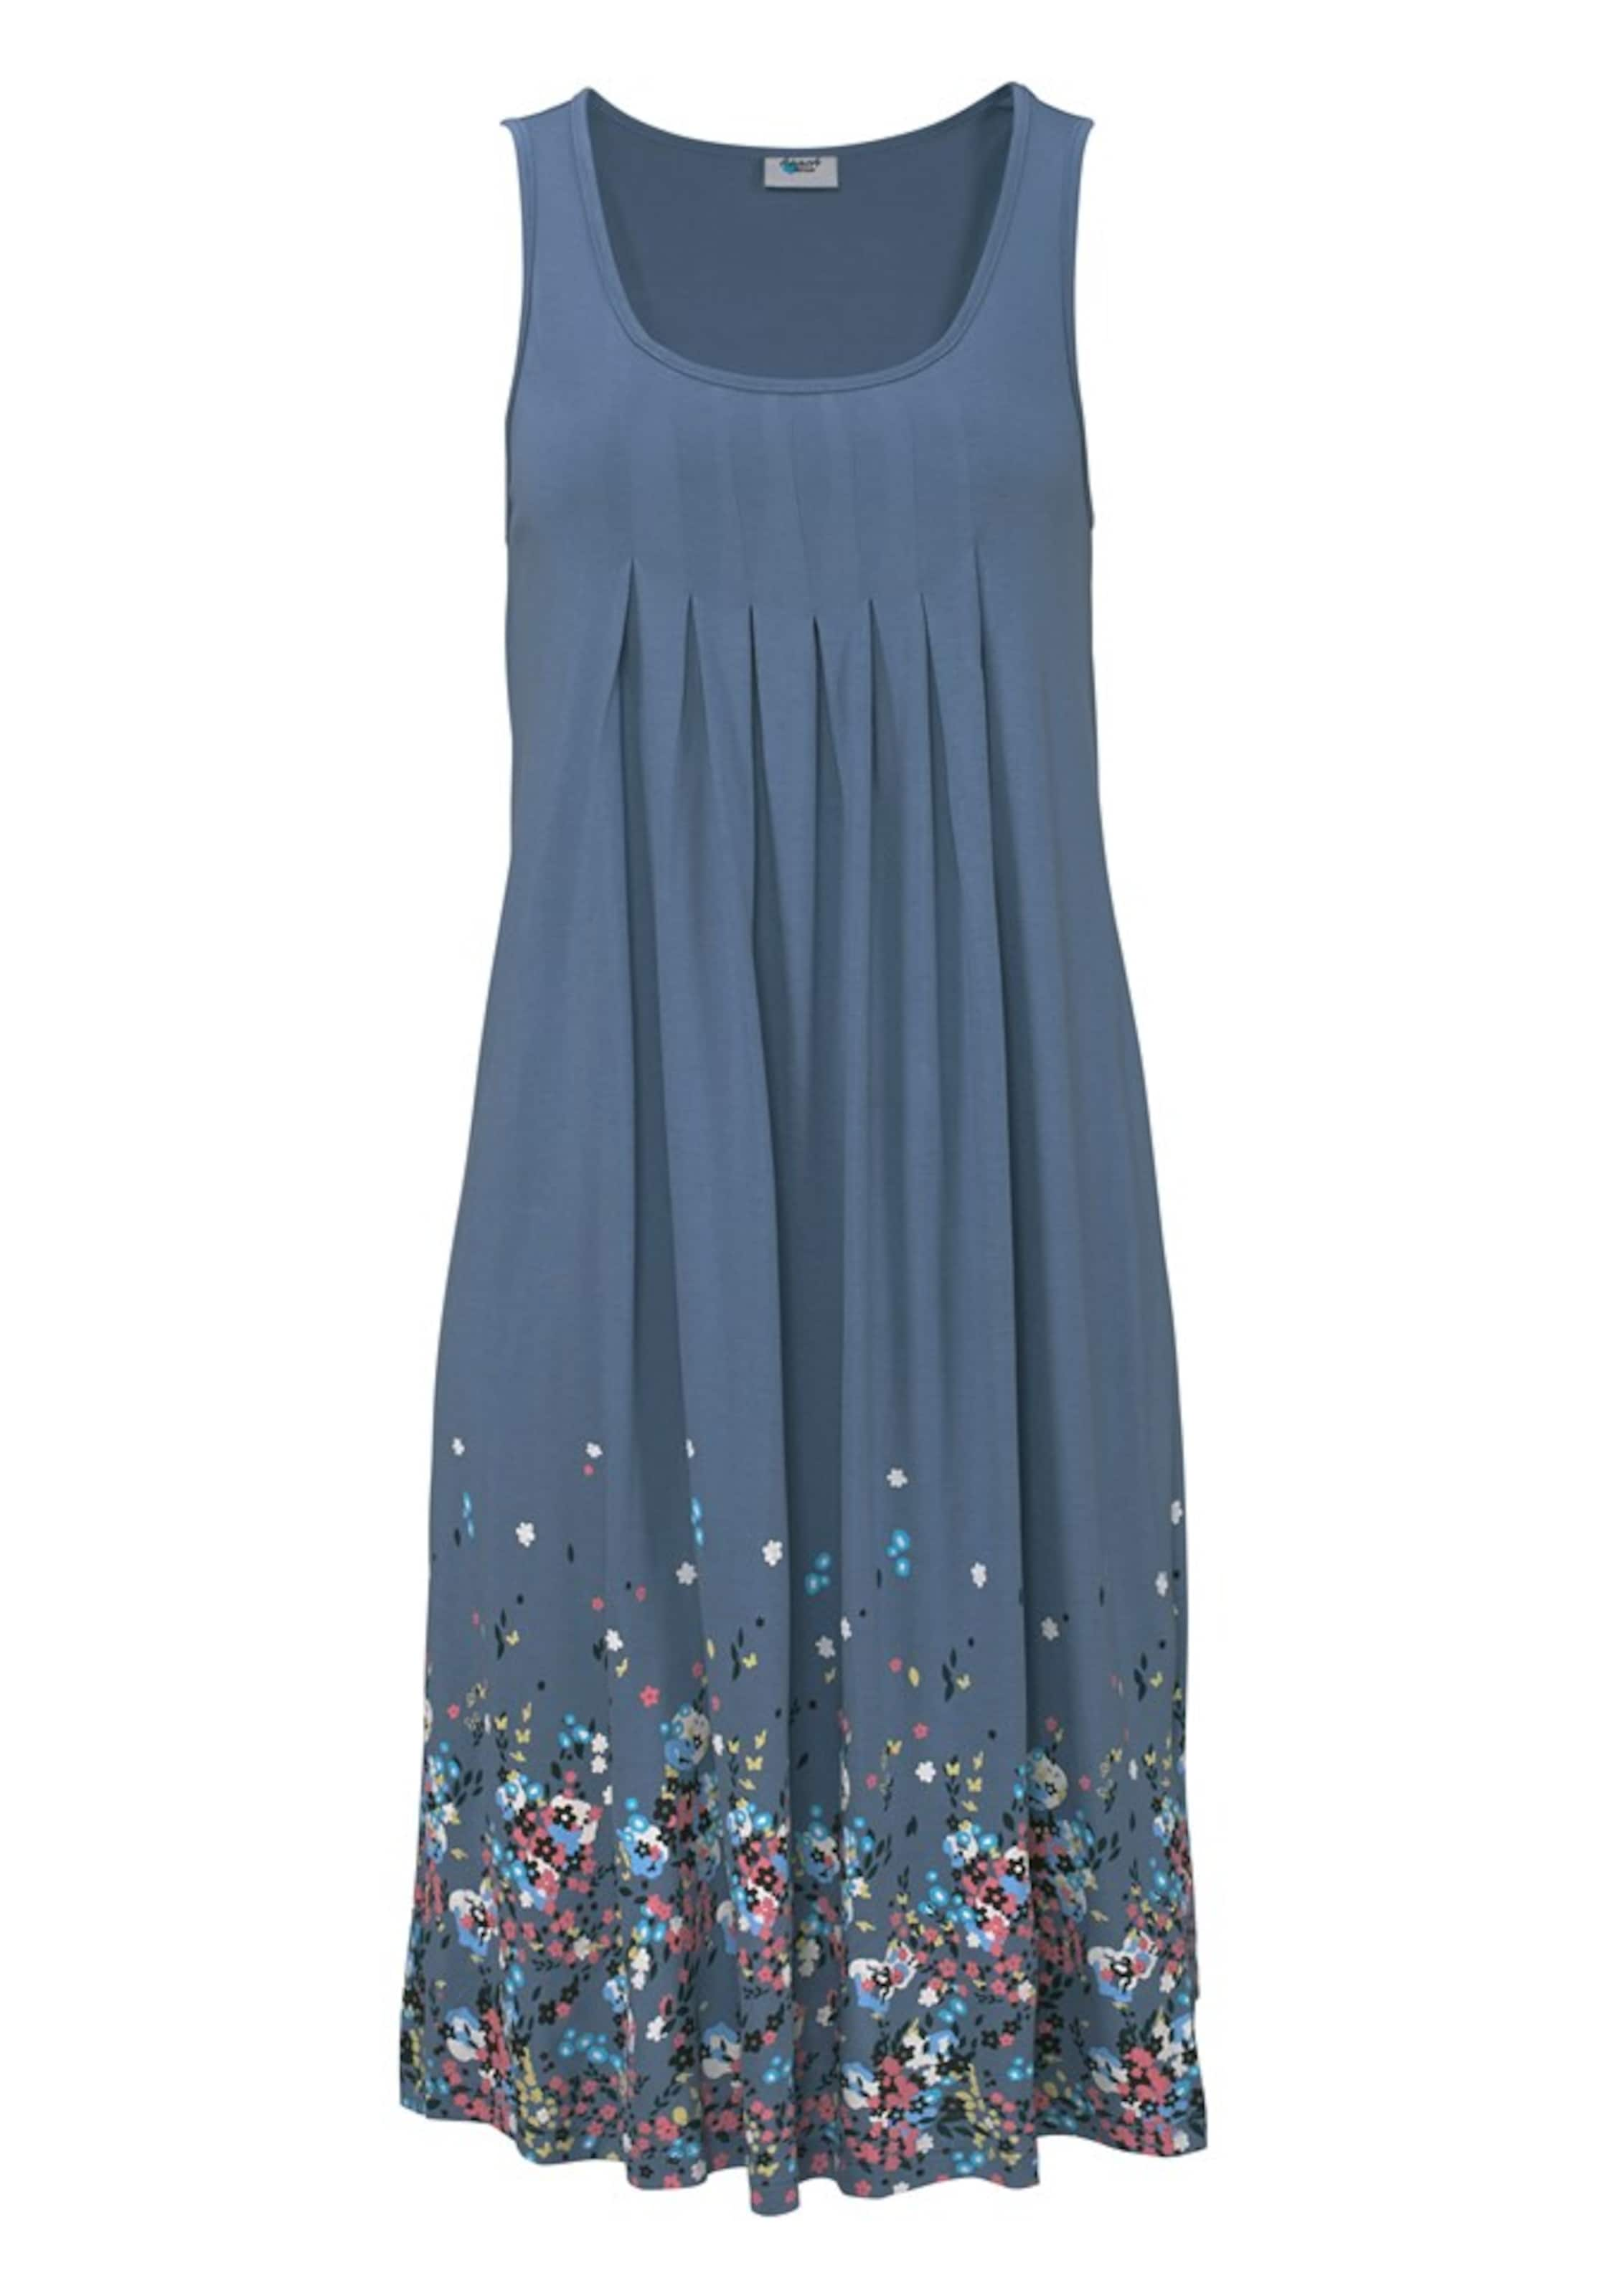 Strandkleid In Beach Rot AquaTaubenblau Time Schwarz rQoeCWdxB